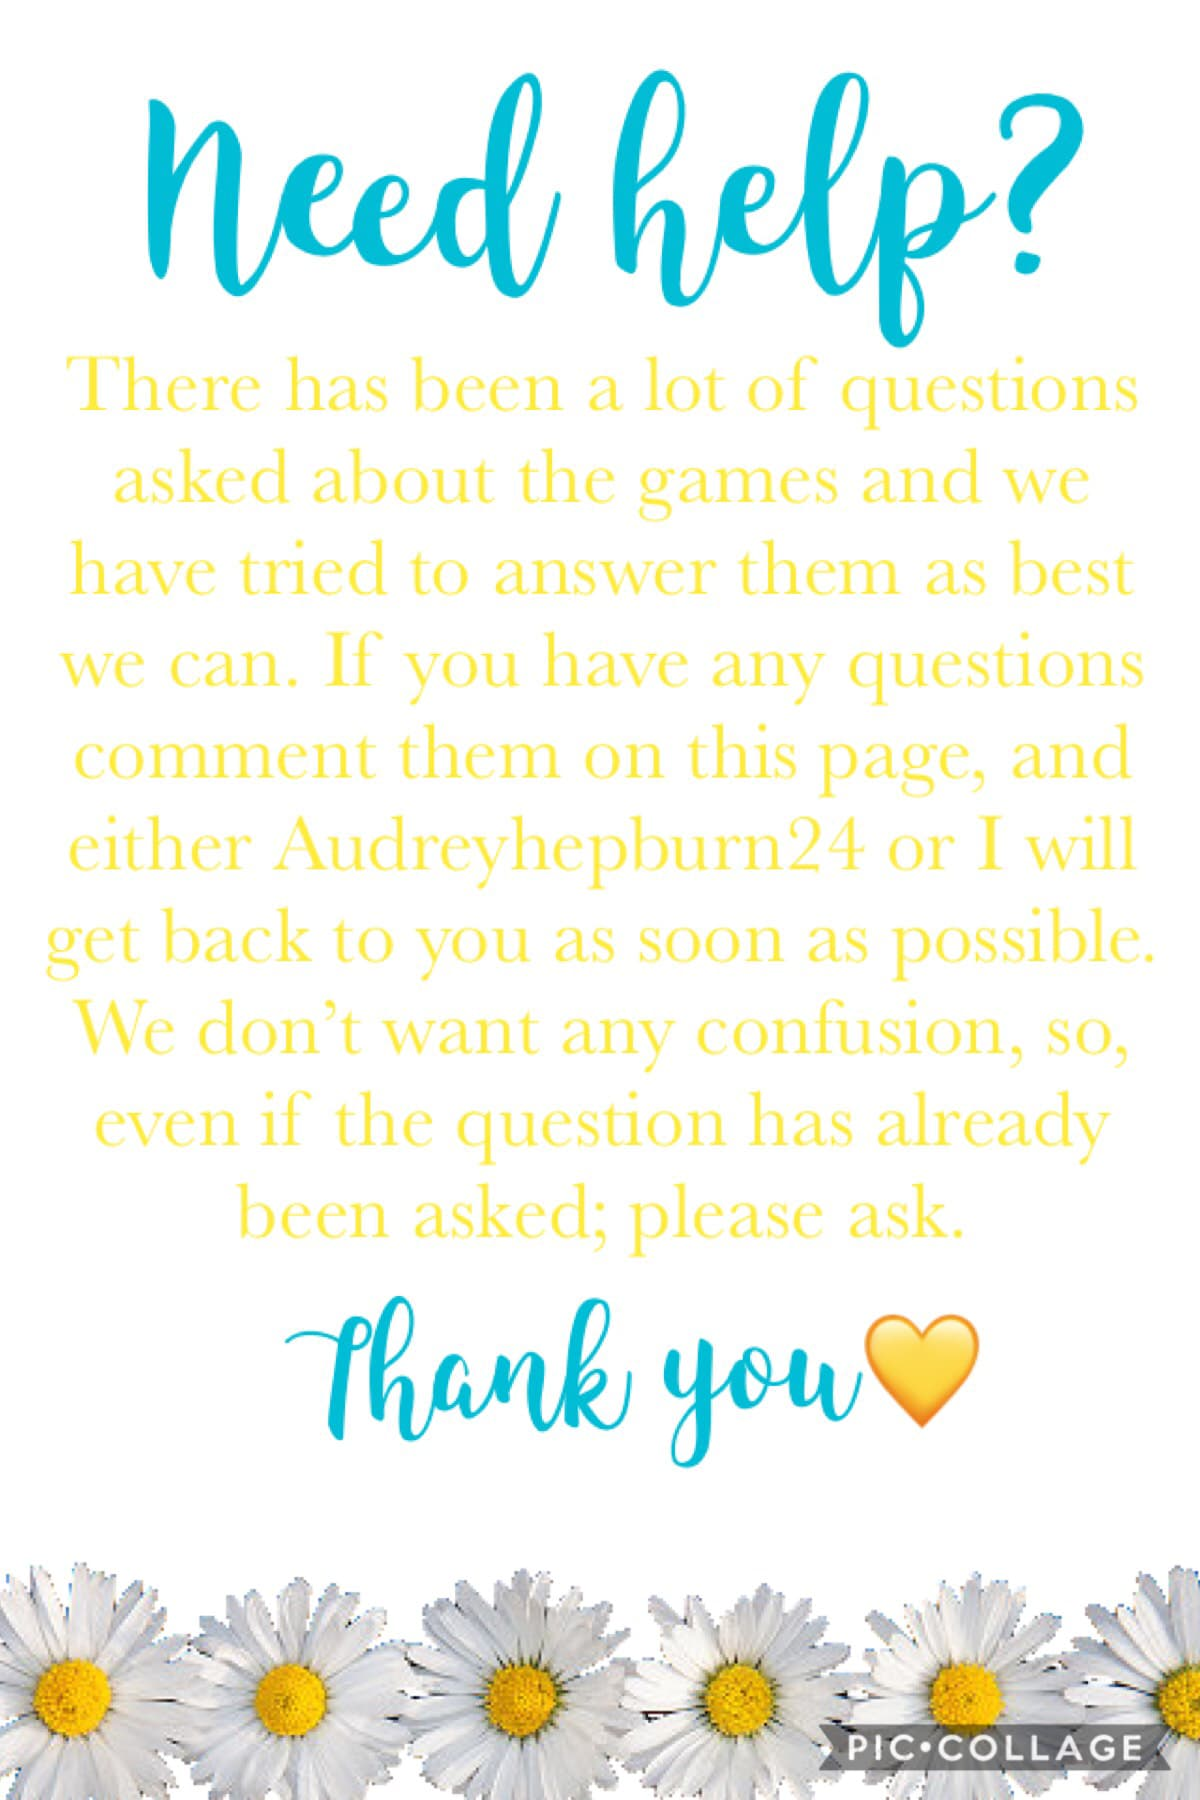 Tap 🌸  If you have any questions about the games, please ask them on this page. We would be more than happy to help you. 💛